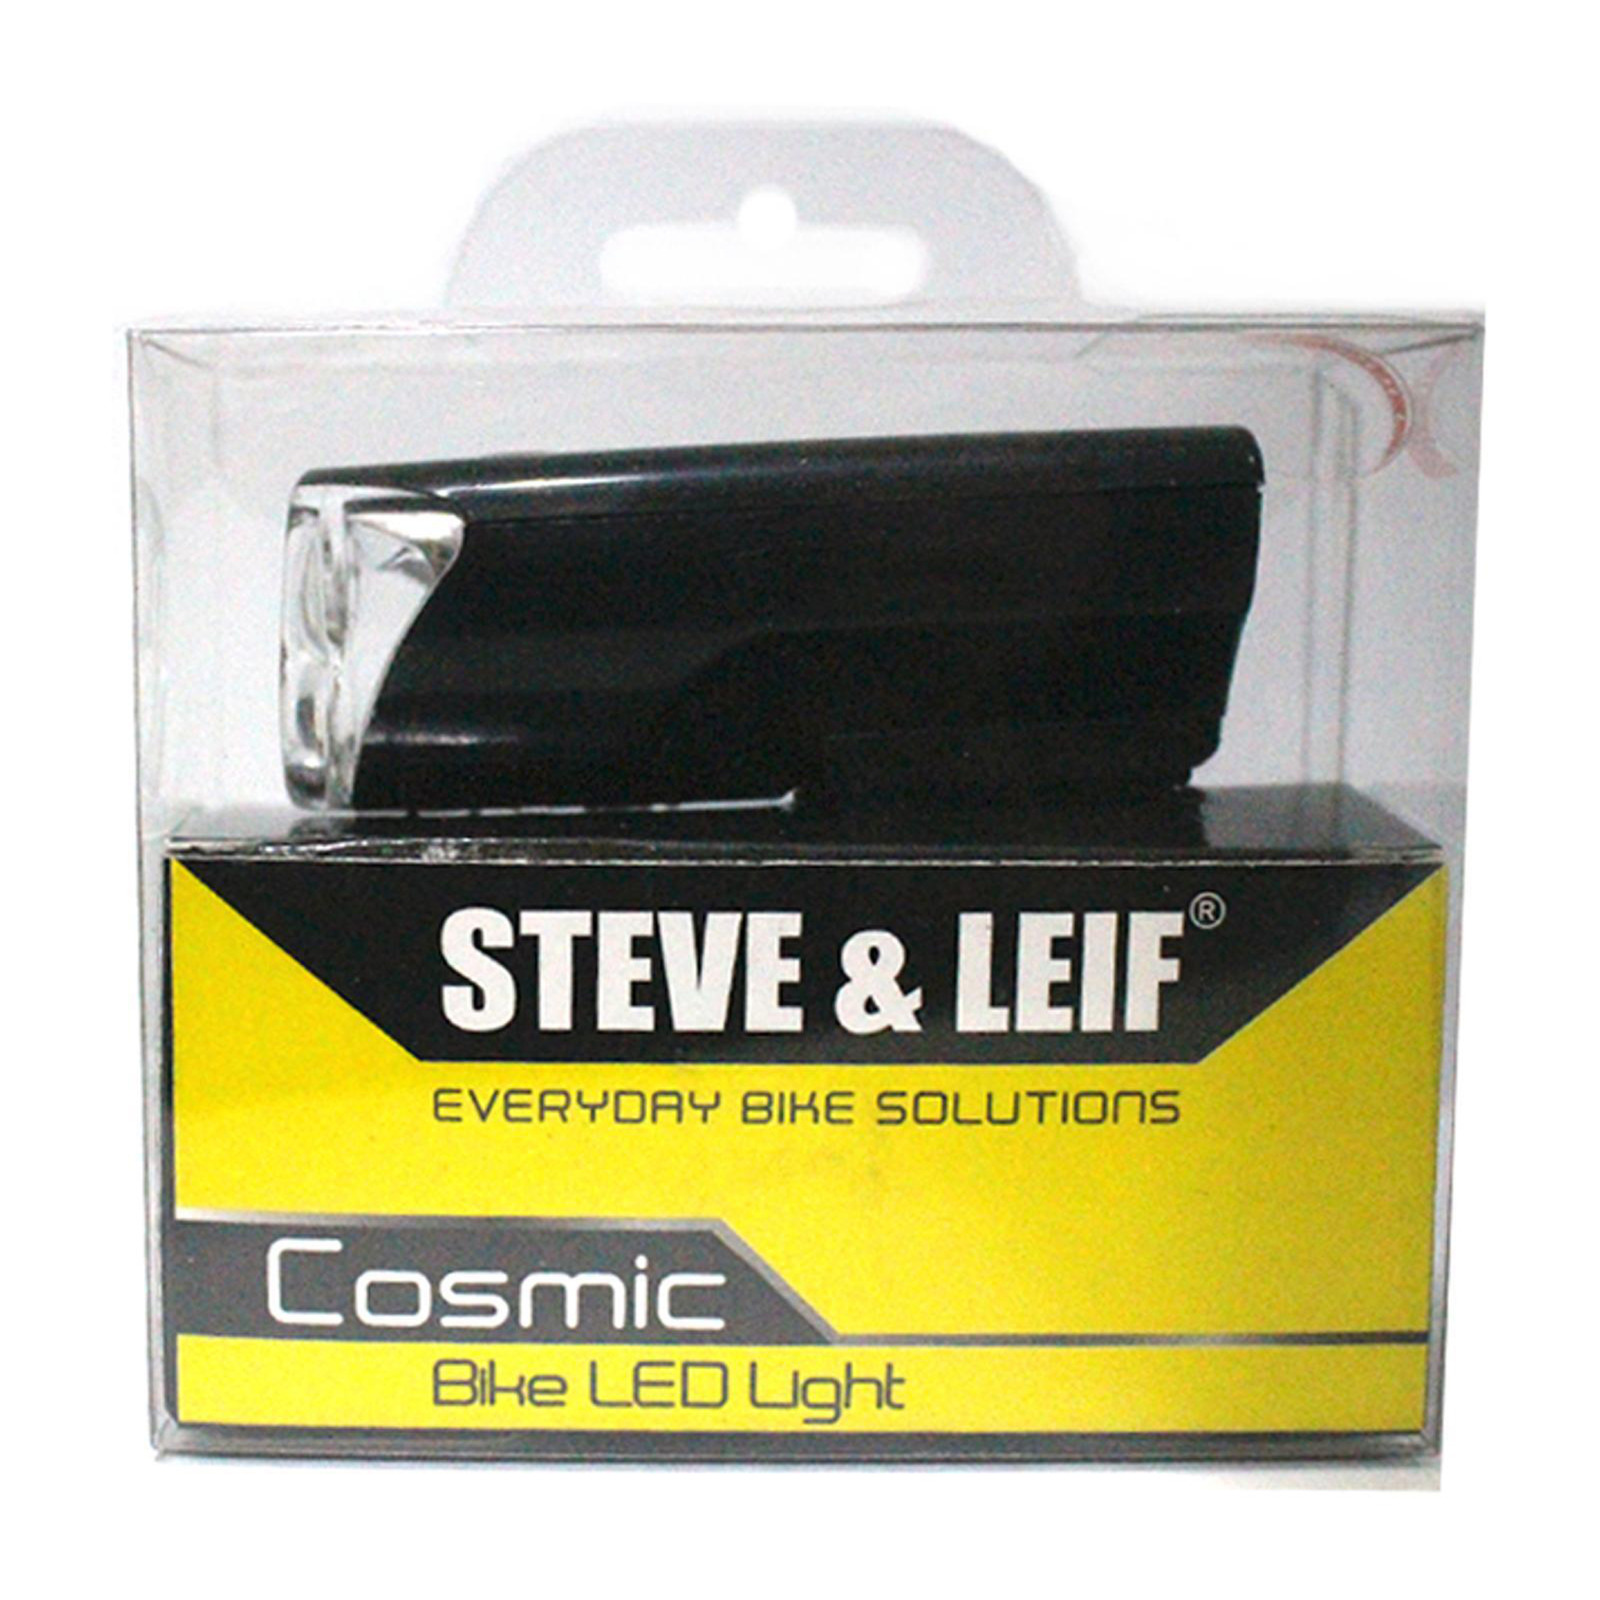 Steve & Leif Cosmic 3 LED White Bicycle Torch